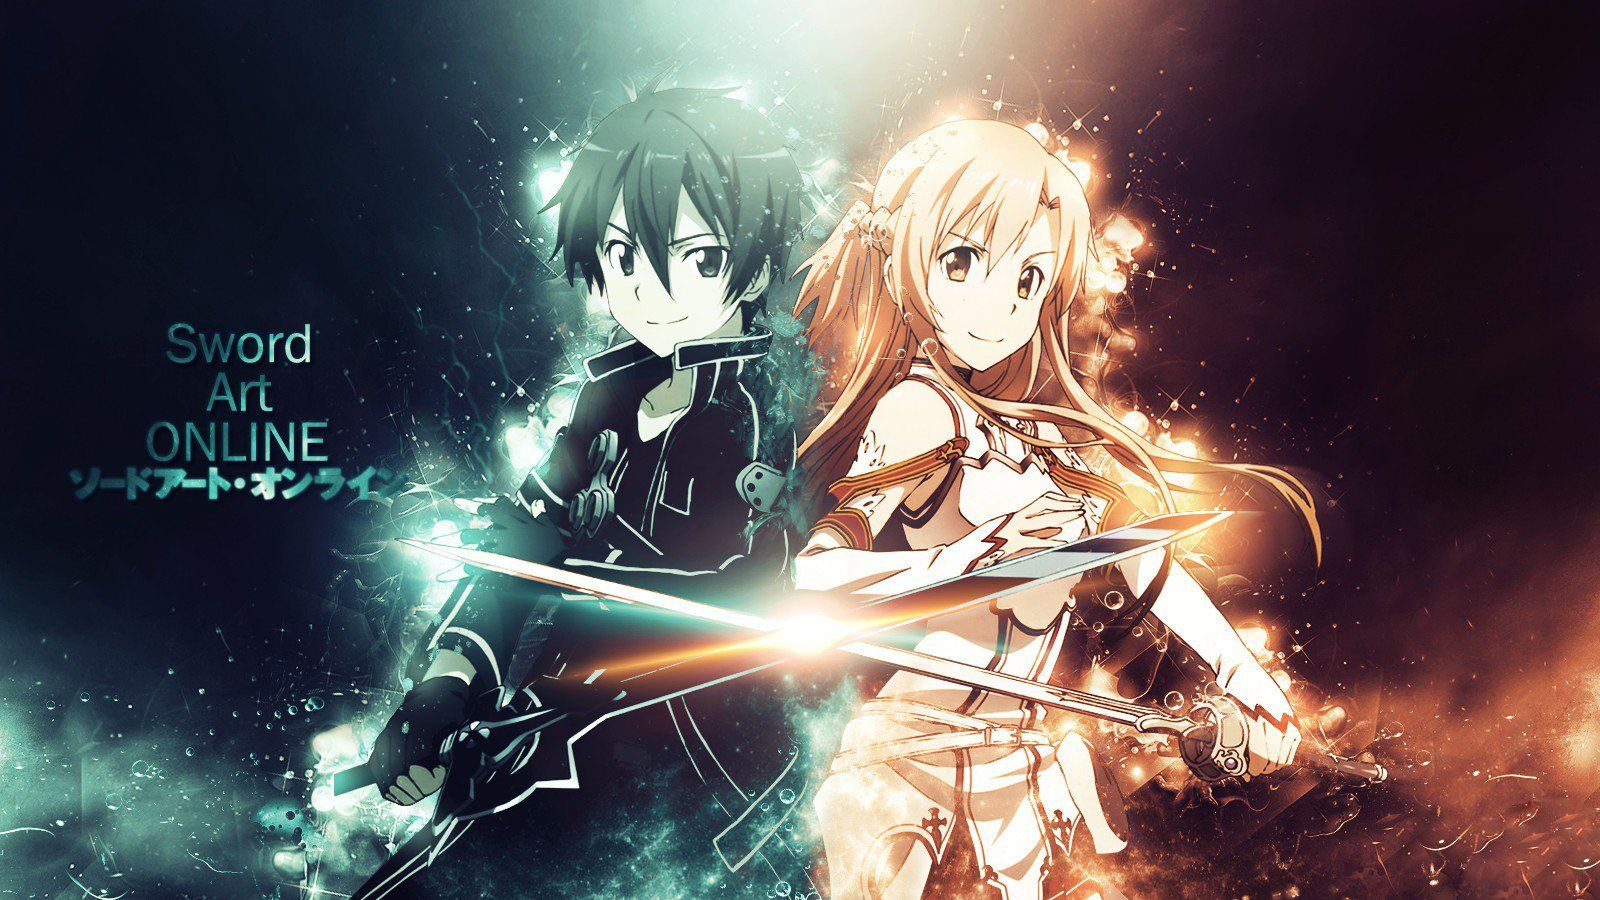 Sword Art Online Wallpapers Top Free Sword Art Online